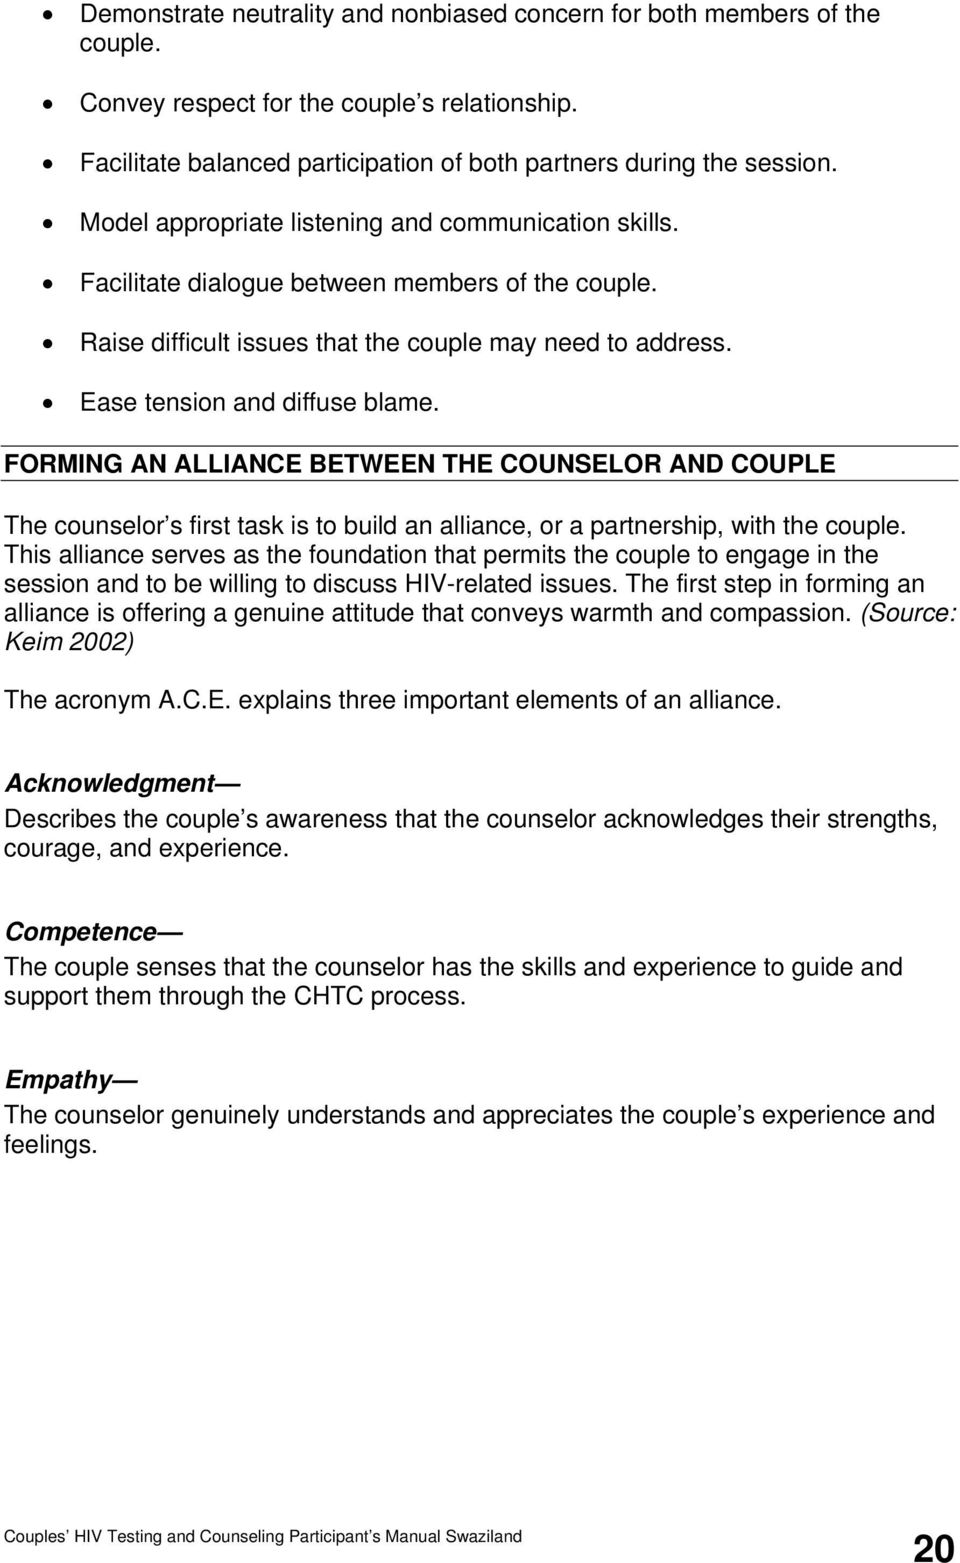 FORMING AN ALLIANCE BETWEEN THE COUNSELOR AND COUPLE The counselor s first task is to build an alliance, or a partnership, with the couple.